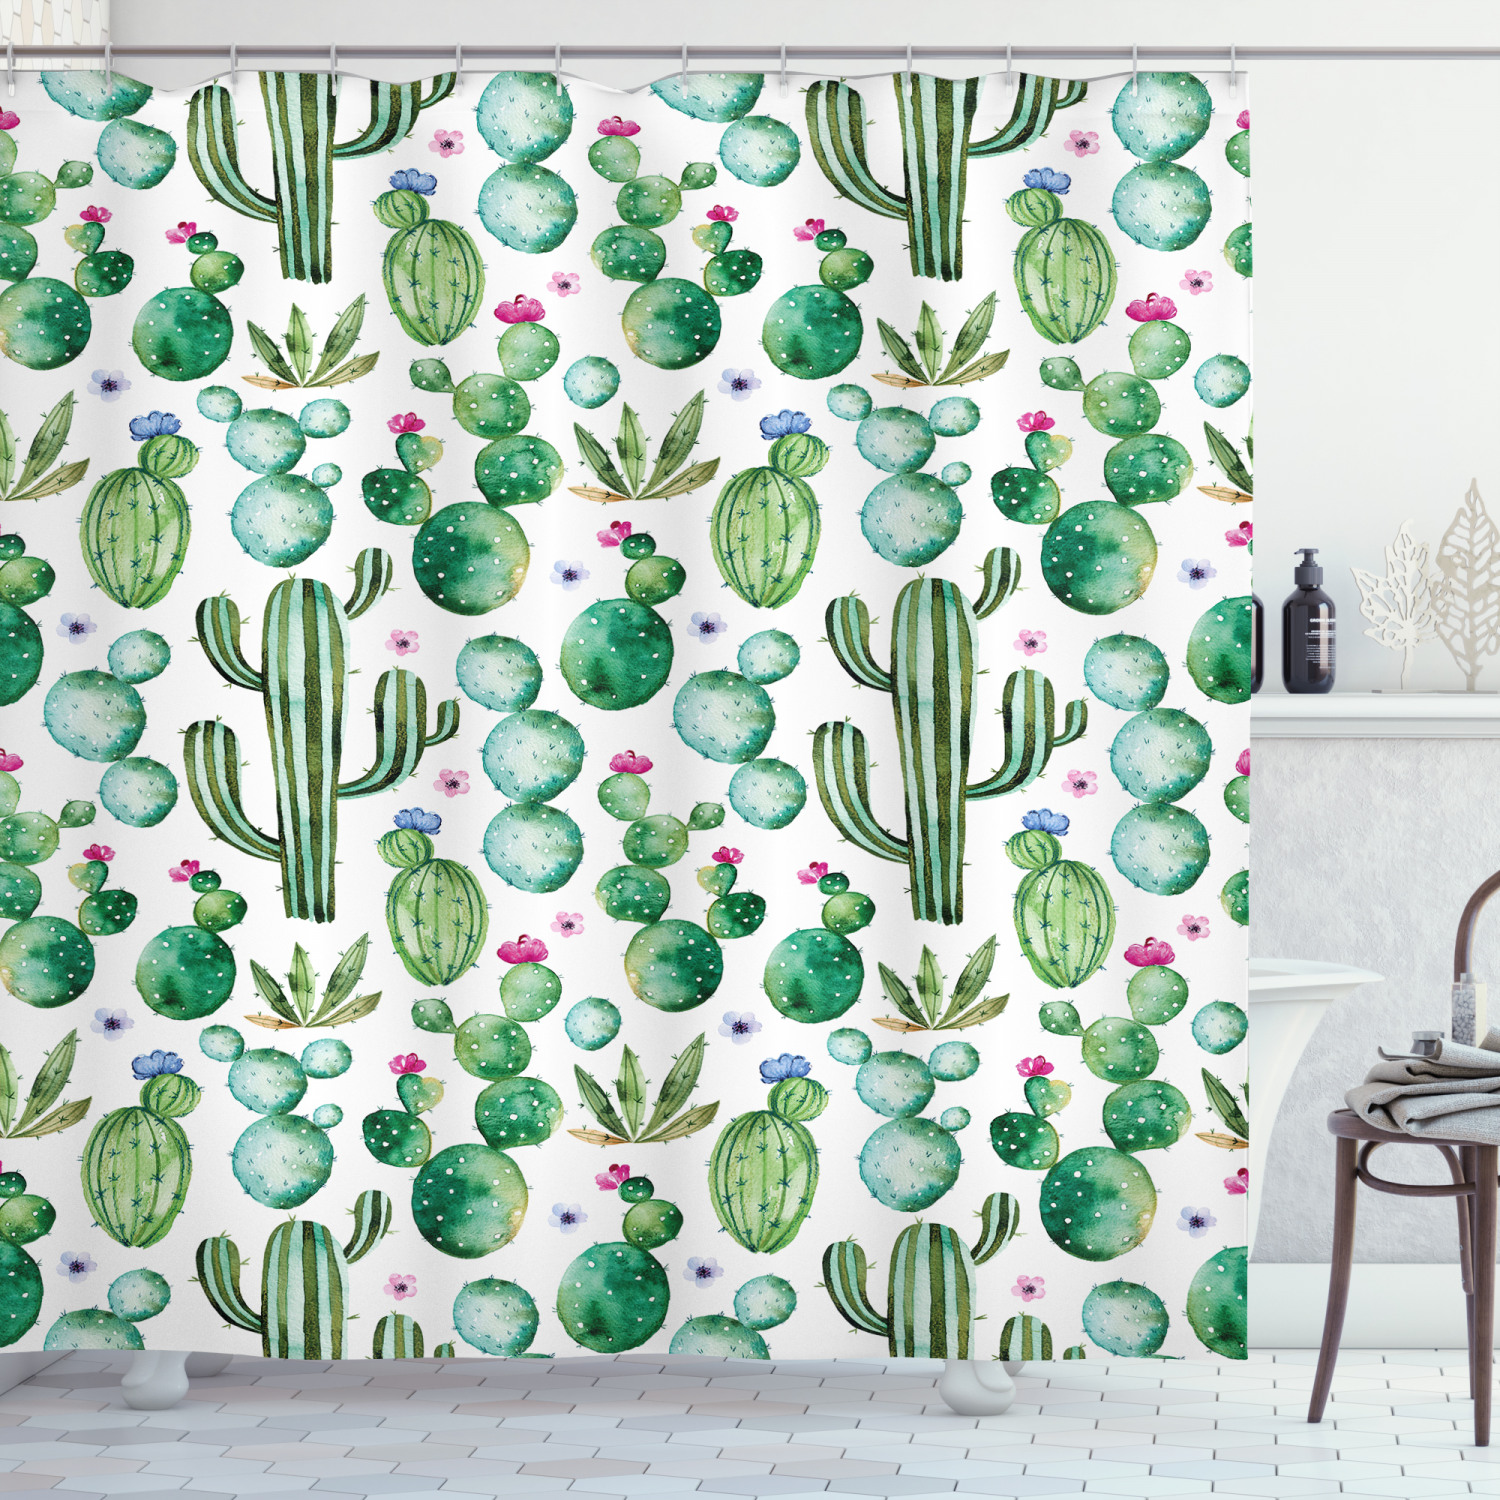 green shower curtain mexican texas cactus plants spikes cartoon like artistic print fabric bathroom set with hooks white pale pink and lime green